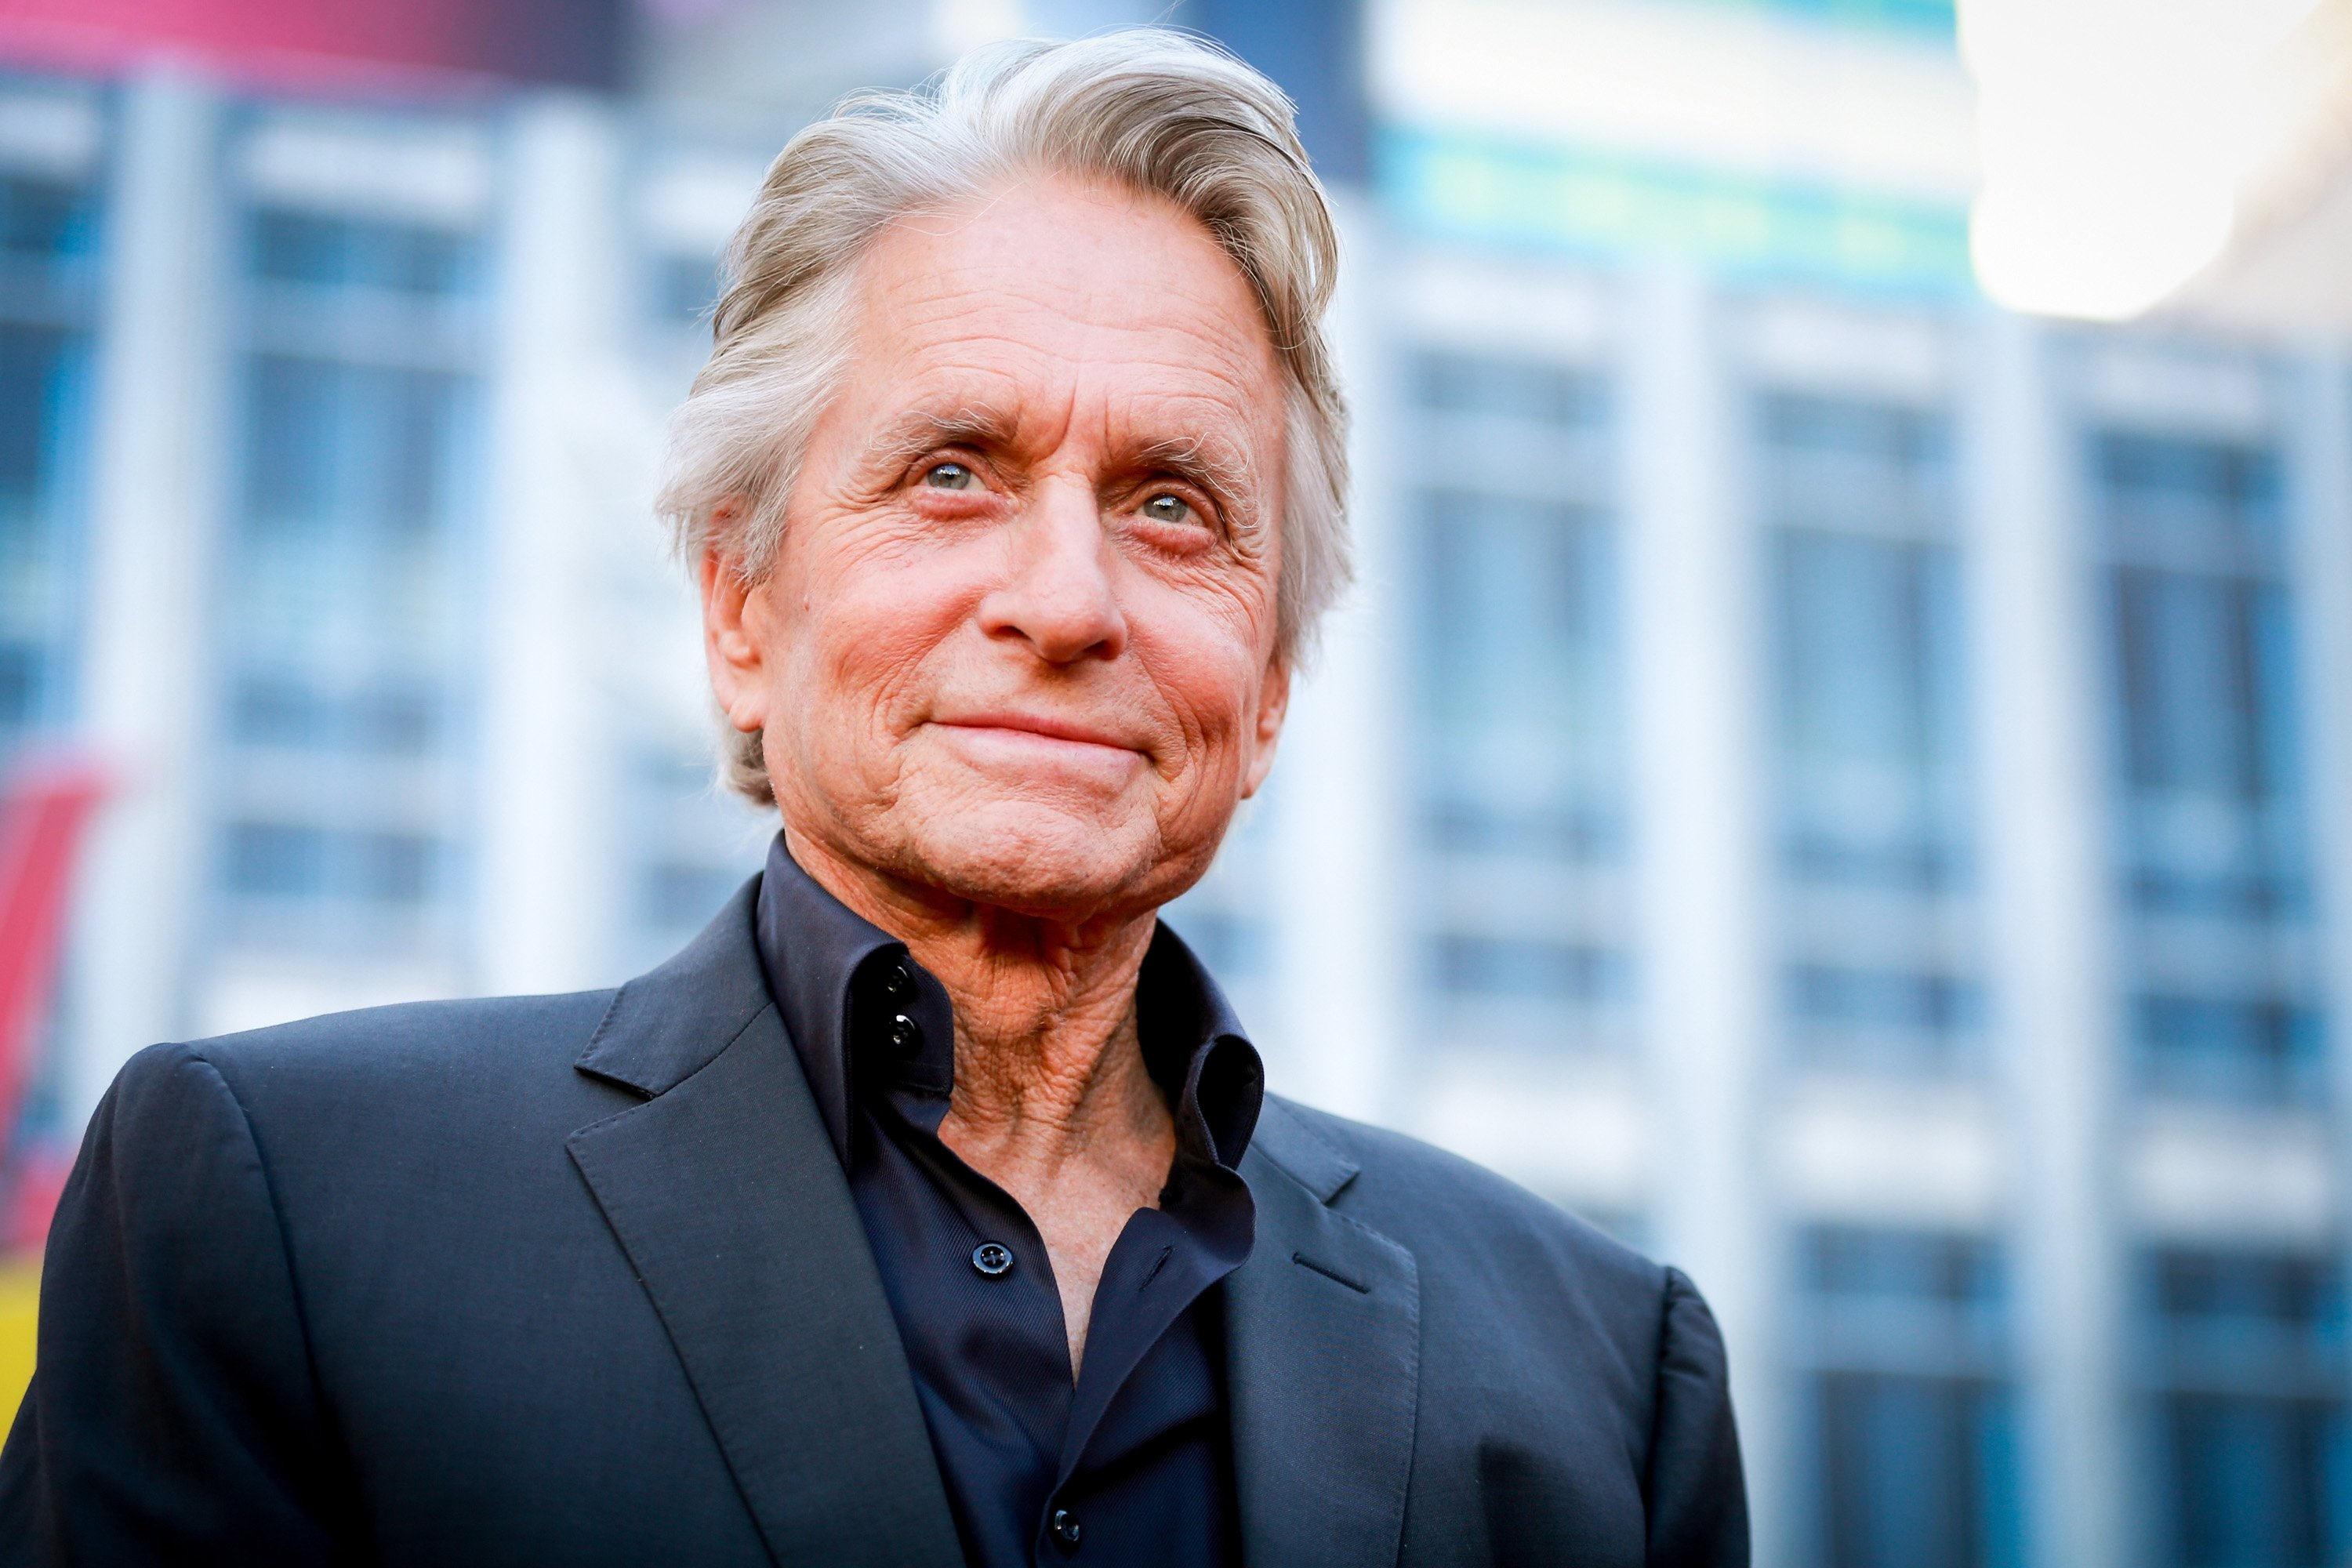 Michael Douglas attends the premiere of Disney And Marvel's 'Ant-Man And The Wasp' on June 25, 2018, in Hollywood, California. | Source: Getty Images.